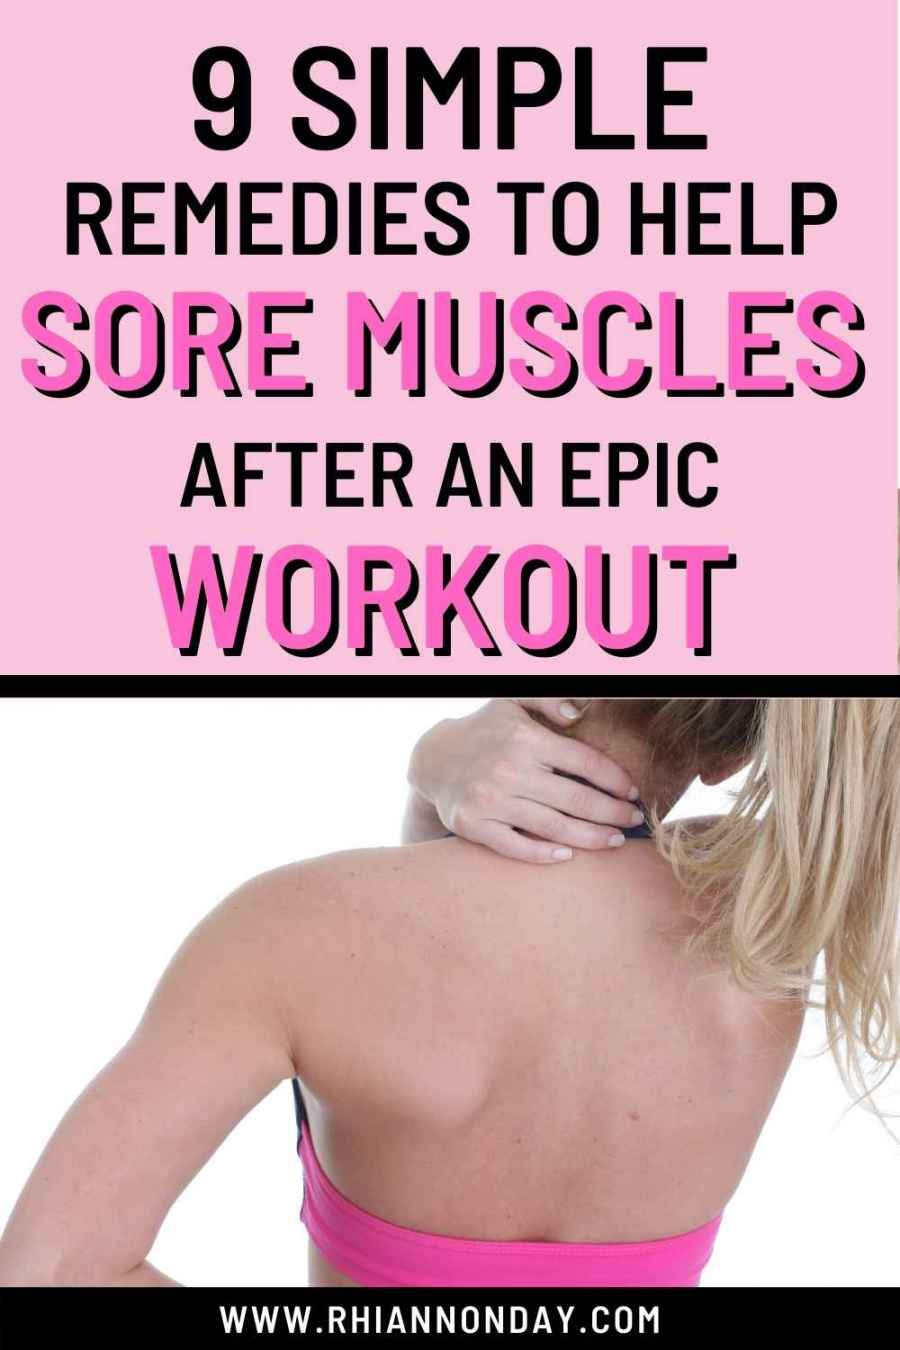 Do you struggle with sore muscles after working out?  Here's how to relieve post-exercise muscle soreness fast. #fitnesstips #personaltrainer #soremuscles #homeremedies #fitnesshacks